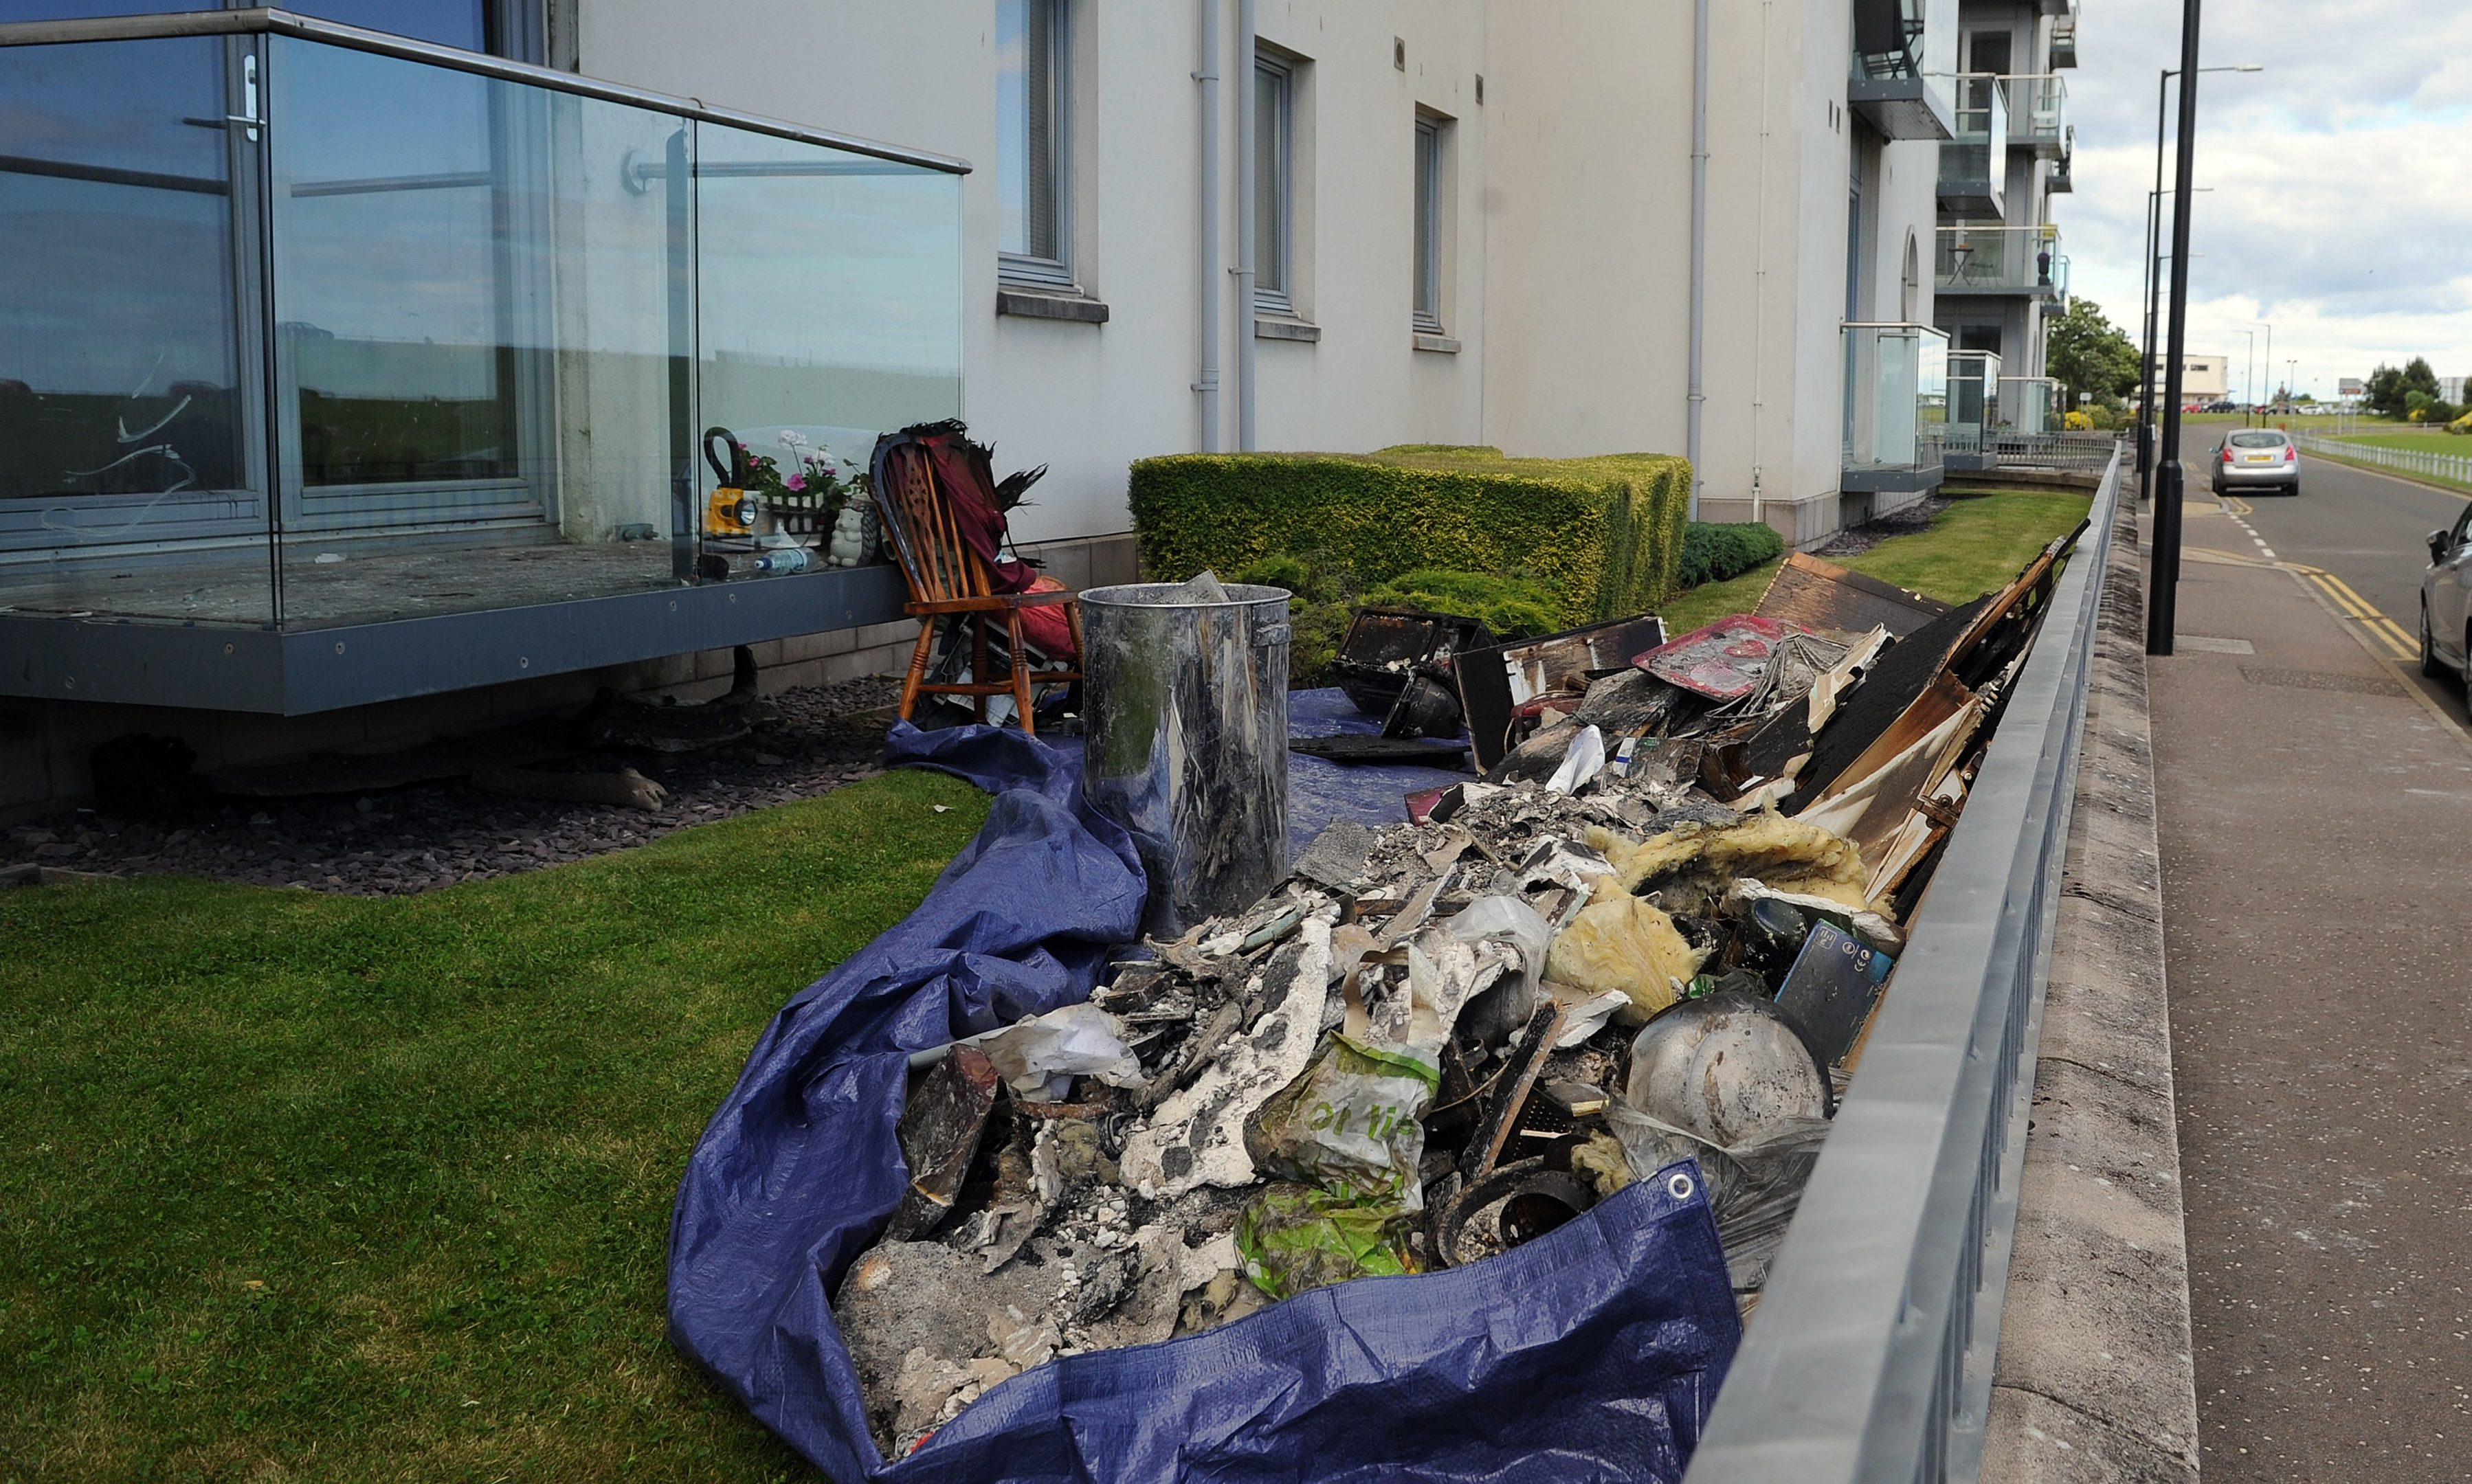 The fire-damaged possessions after the blaze.